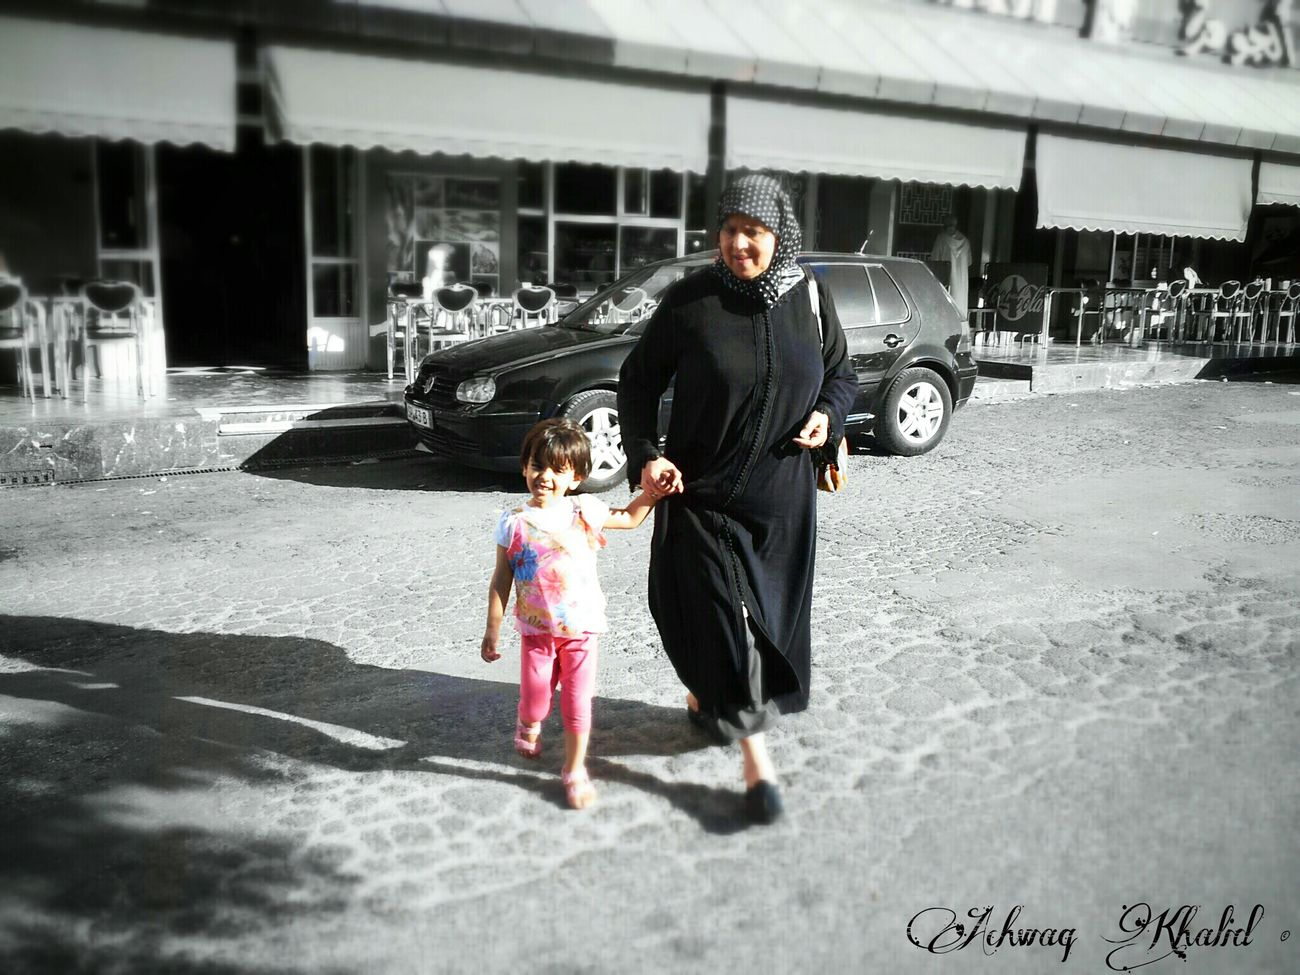 My mom with a little fella Streetphotography Blackandwhite Monochrome Picsart #Androidography #Androidphotography #ColorSplash #Mobilephotography #Phoneography #MobileOnly #N7000 #CameraFV5